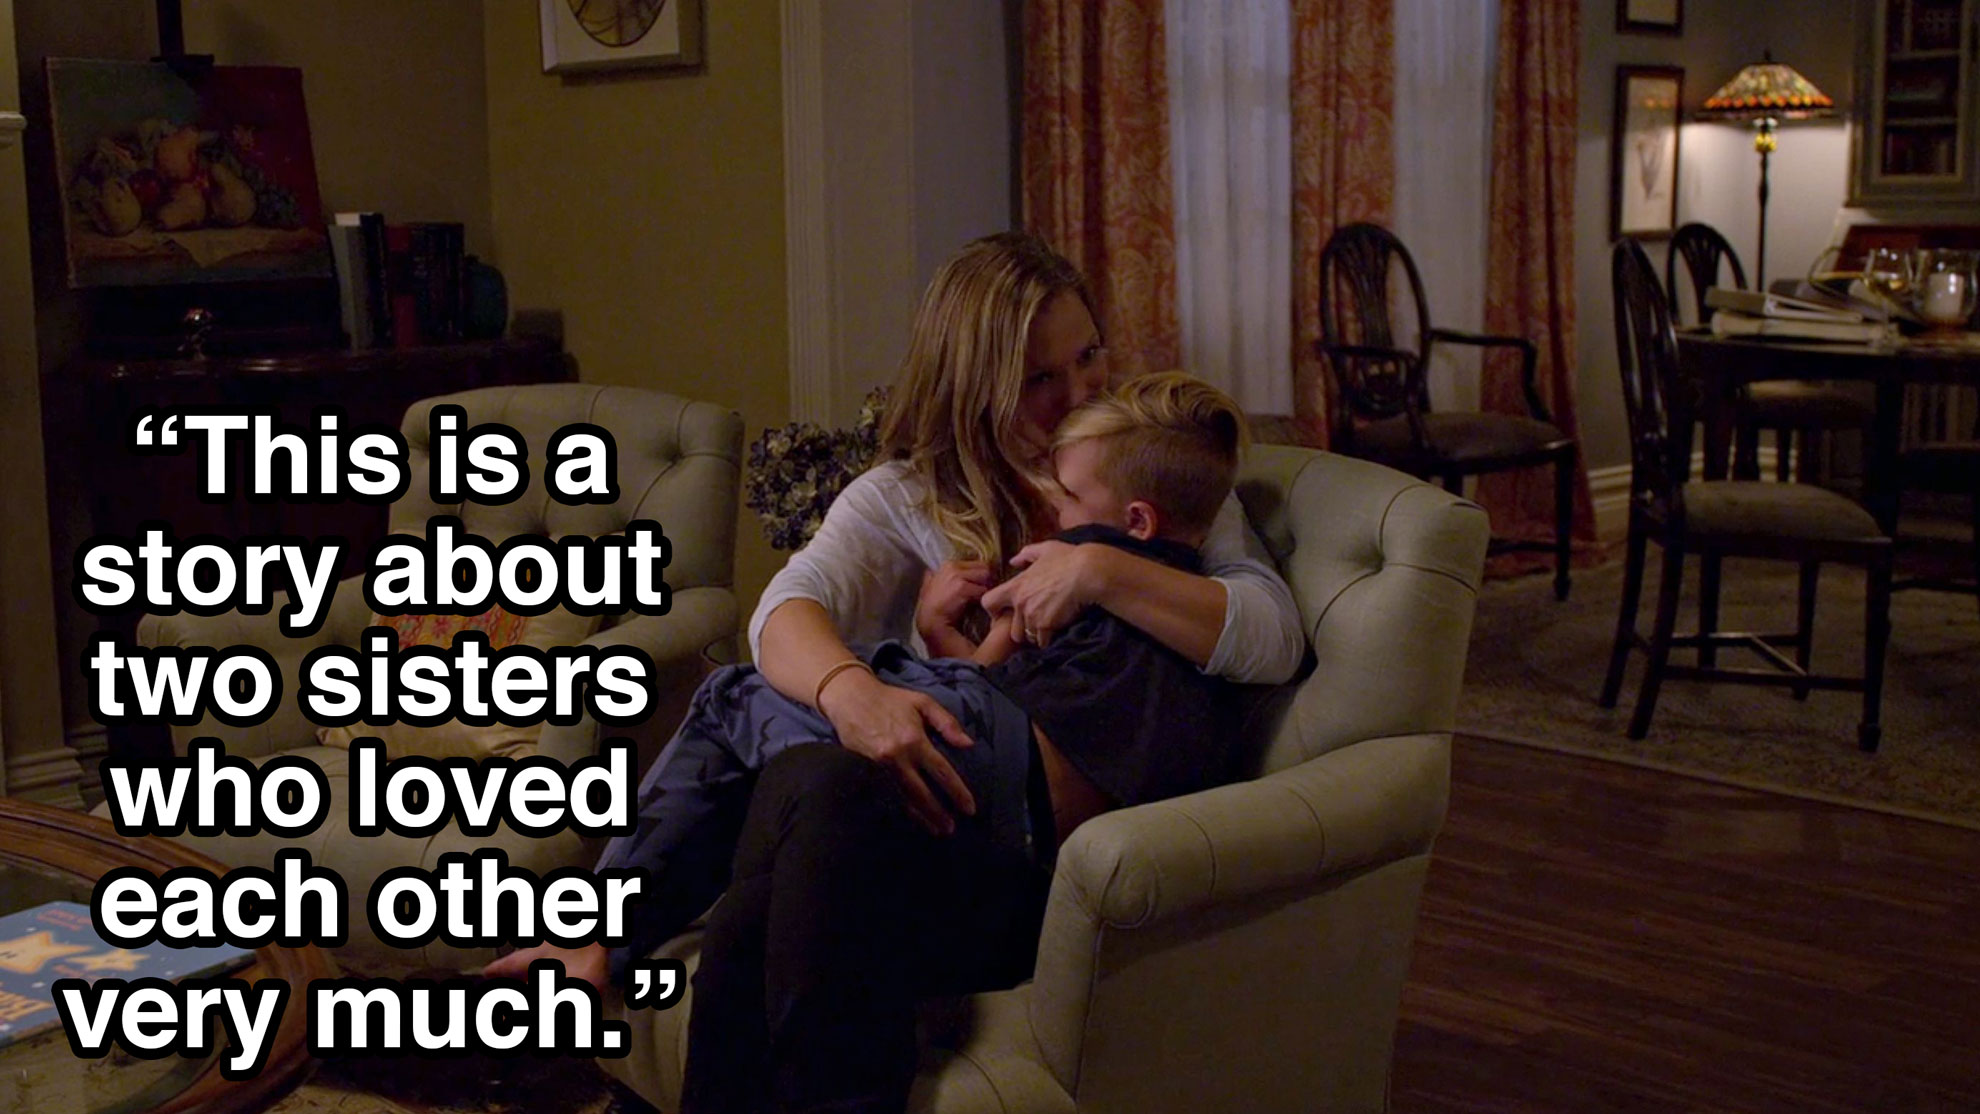 JJ opened up to Henry about her sister, Rosaline.